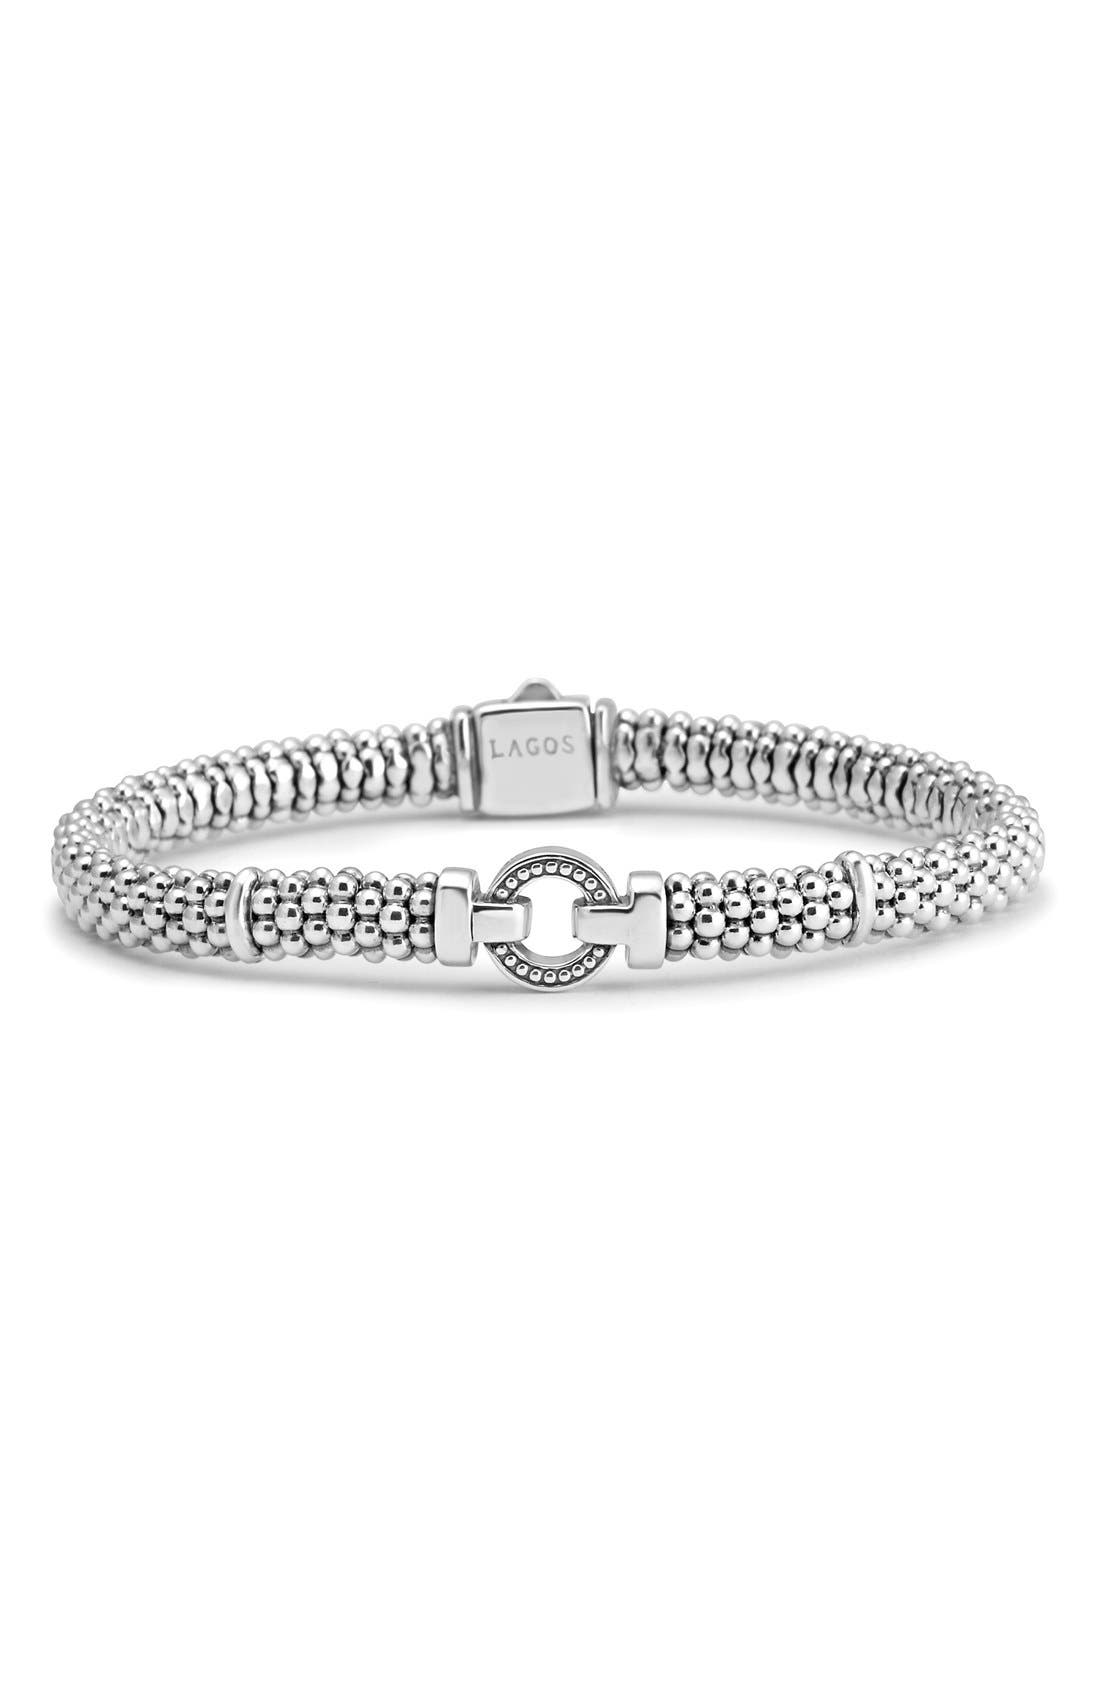 LAGOS, Enso Boxed Circle Station Caviar Rope Bracelet, Main thumbnail 1, color, STERLING SILVER